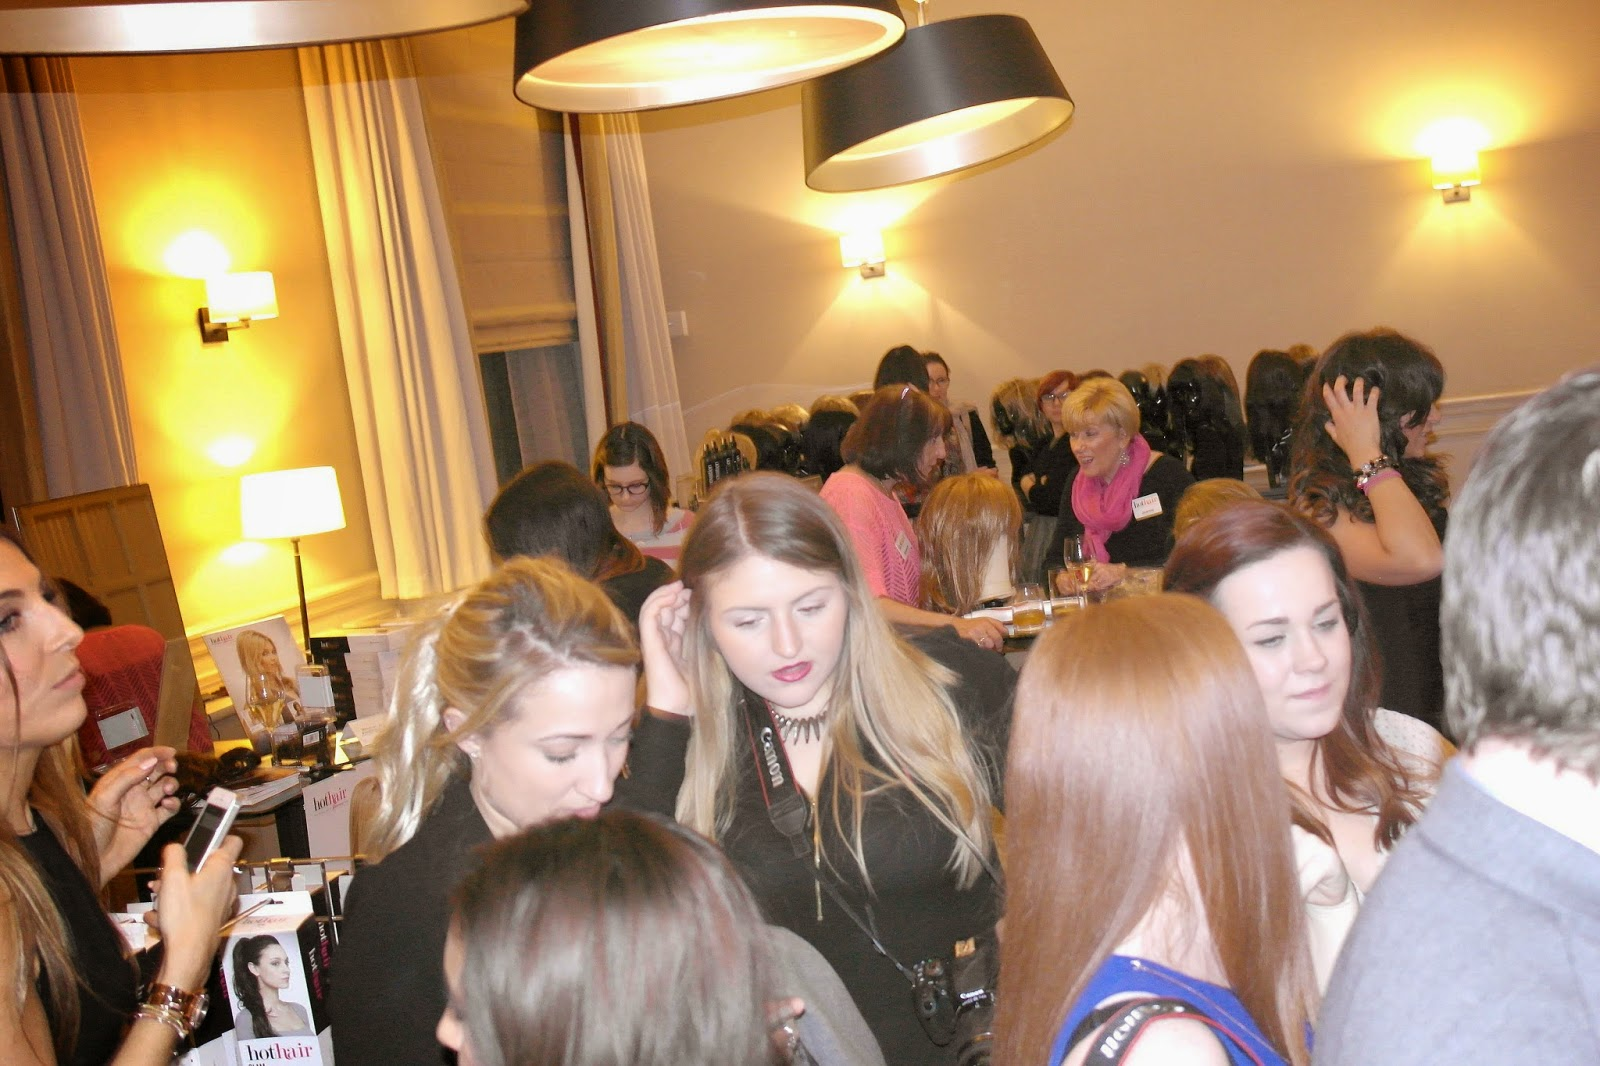 Meeting new bloggers at Hot Hair bloggers event